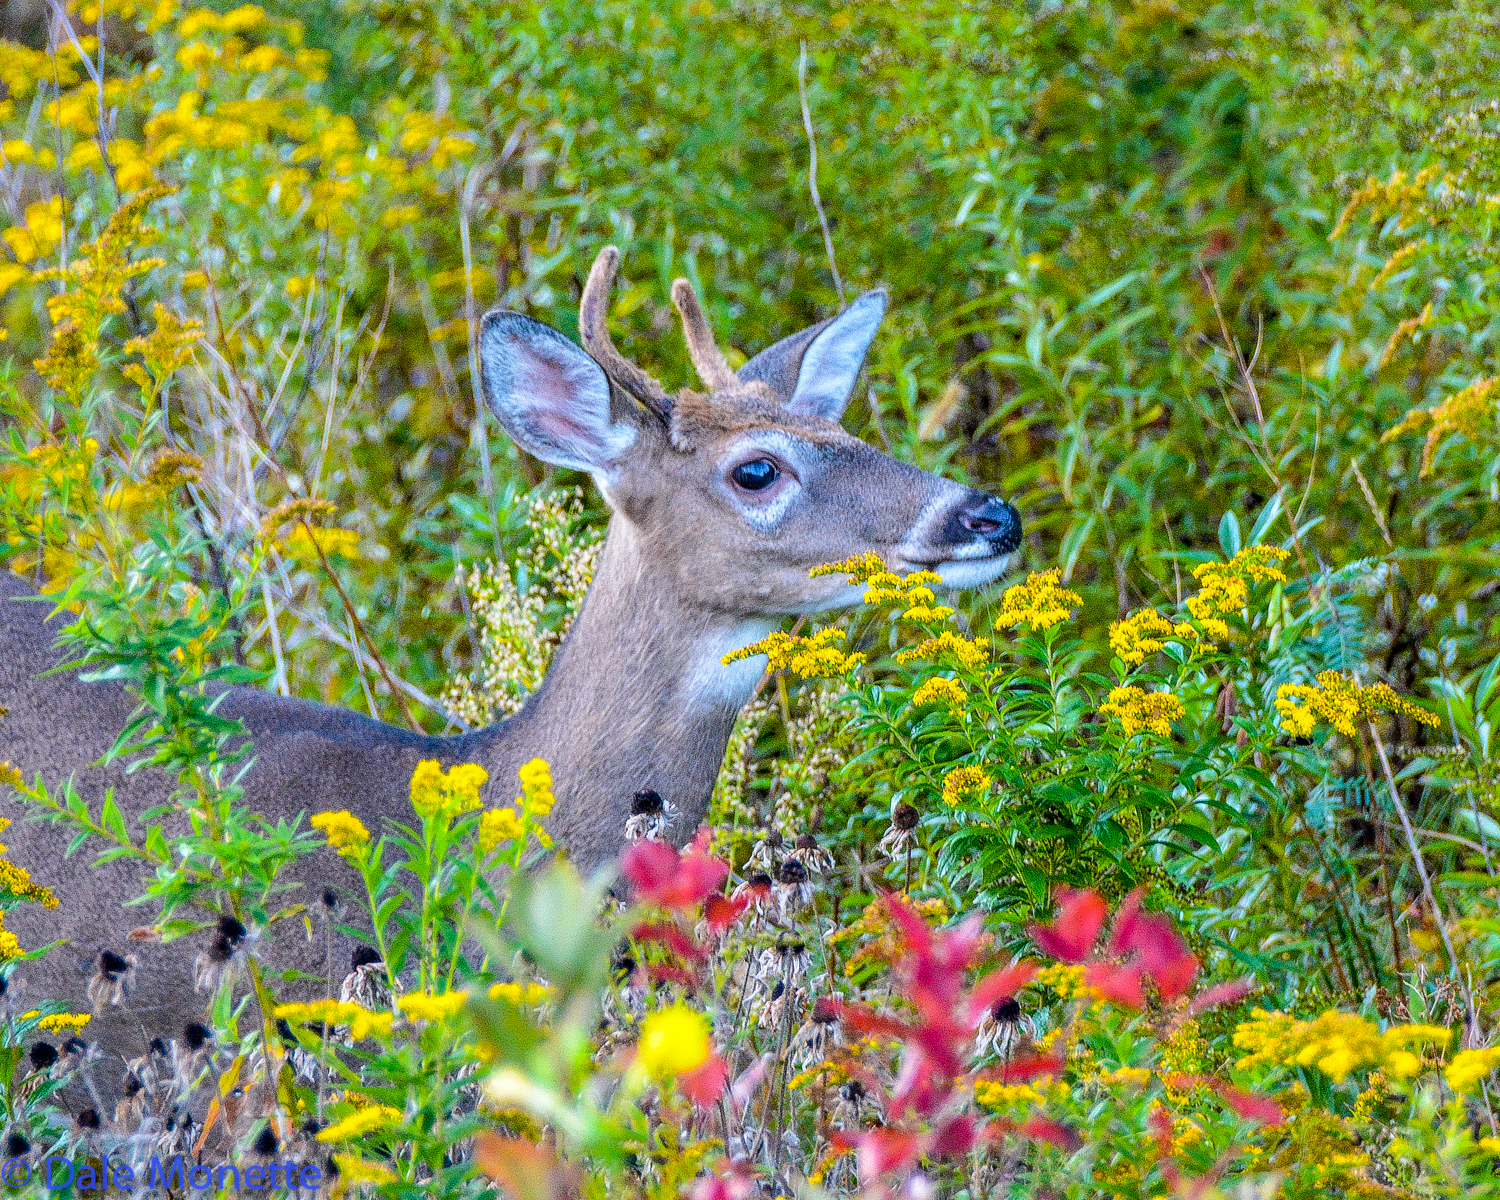 It turned out to be a young spike horn buck. A few minutes down the road I spotted him 20 feet from me in a flower patch.